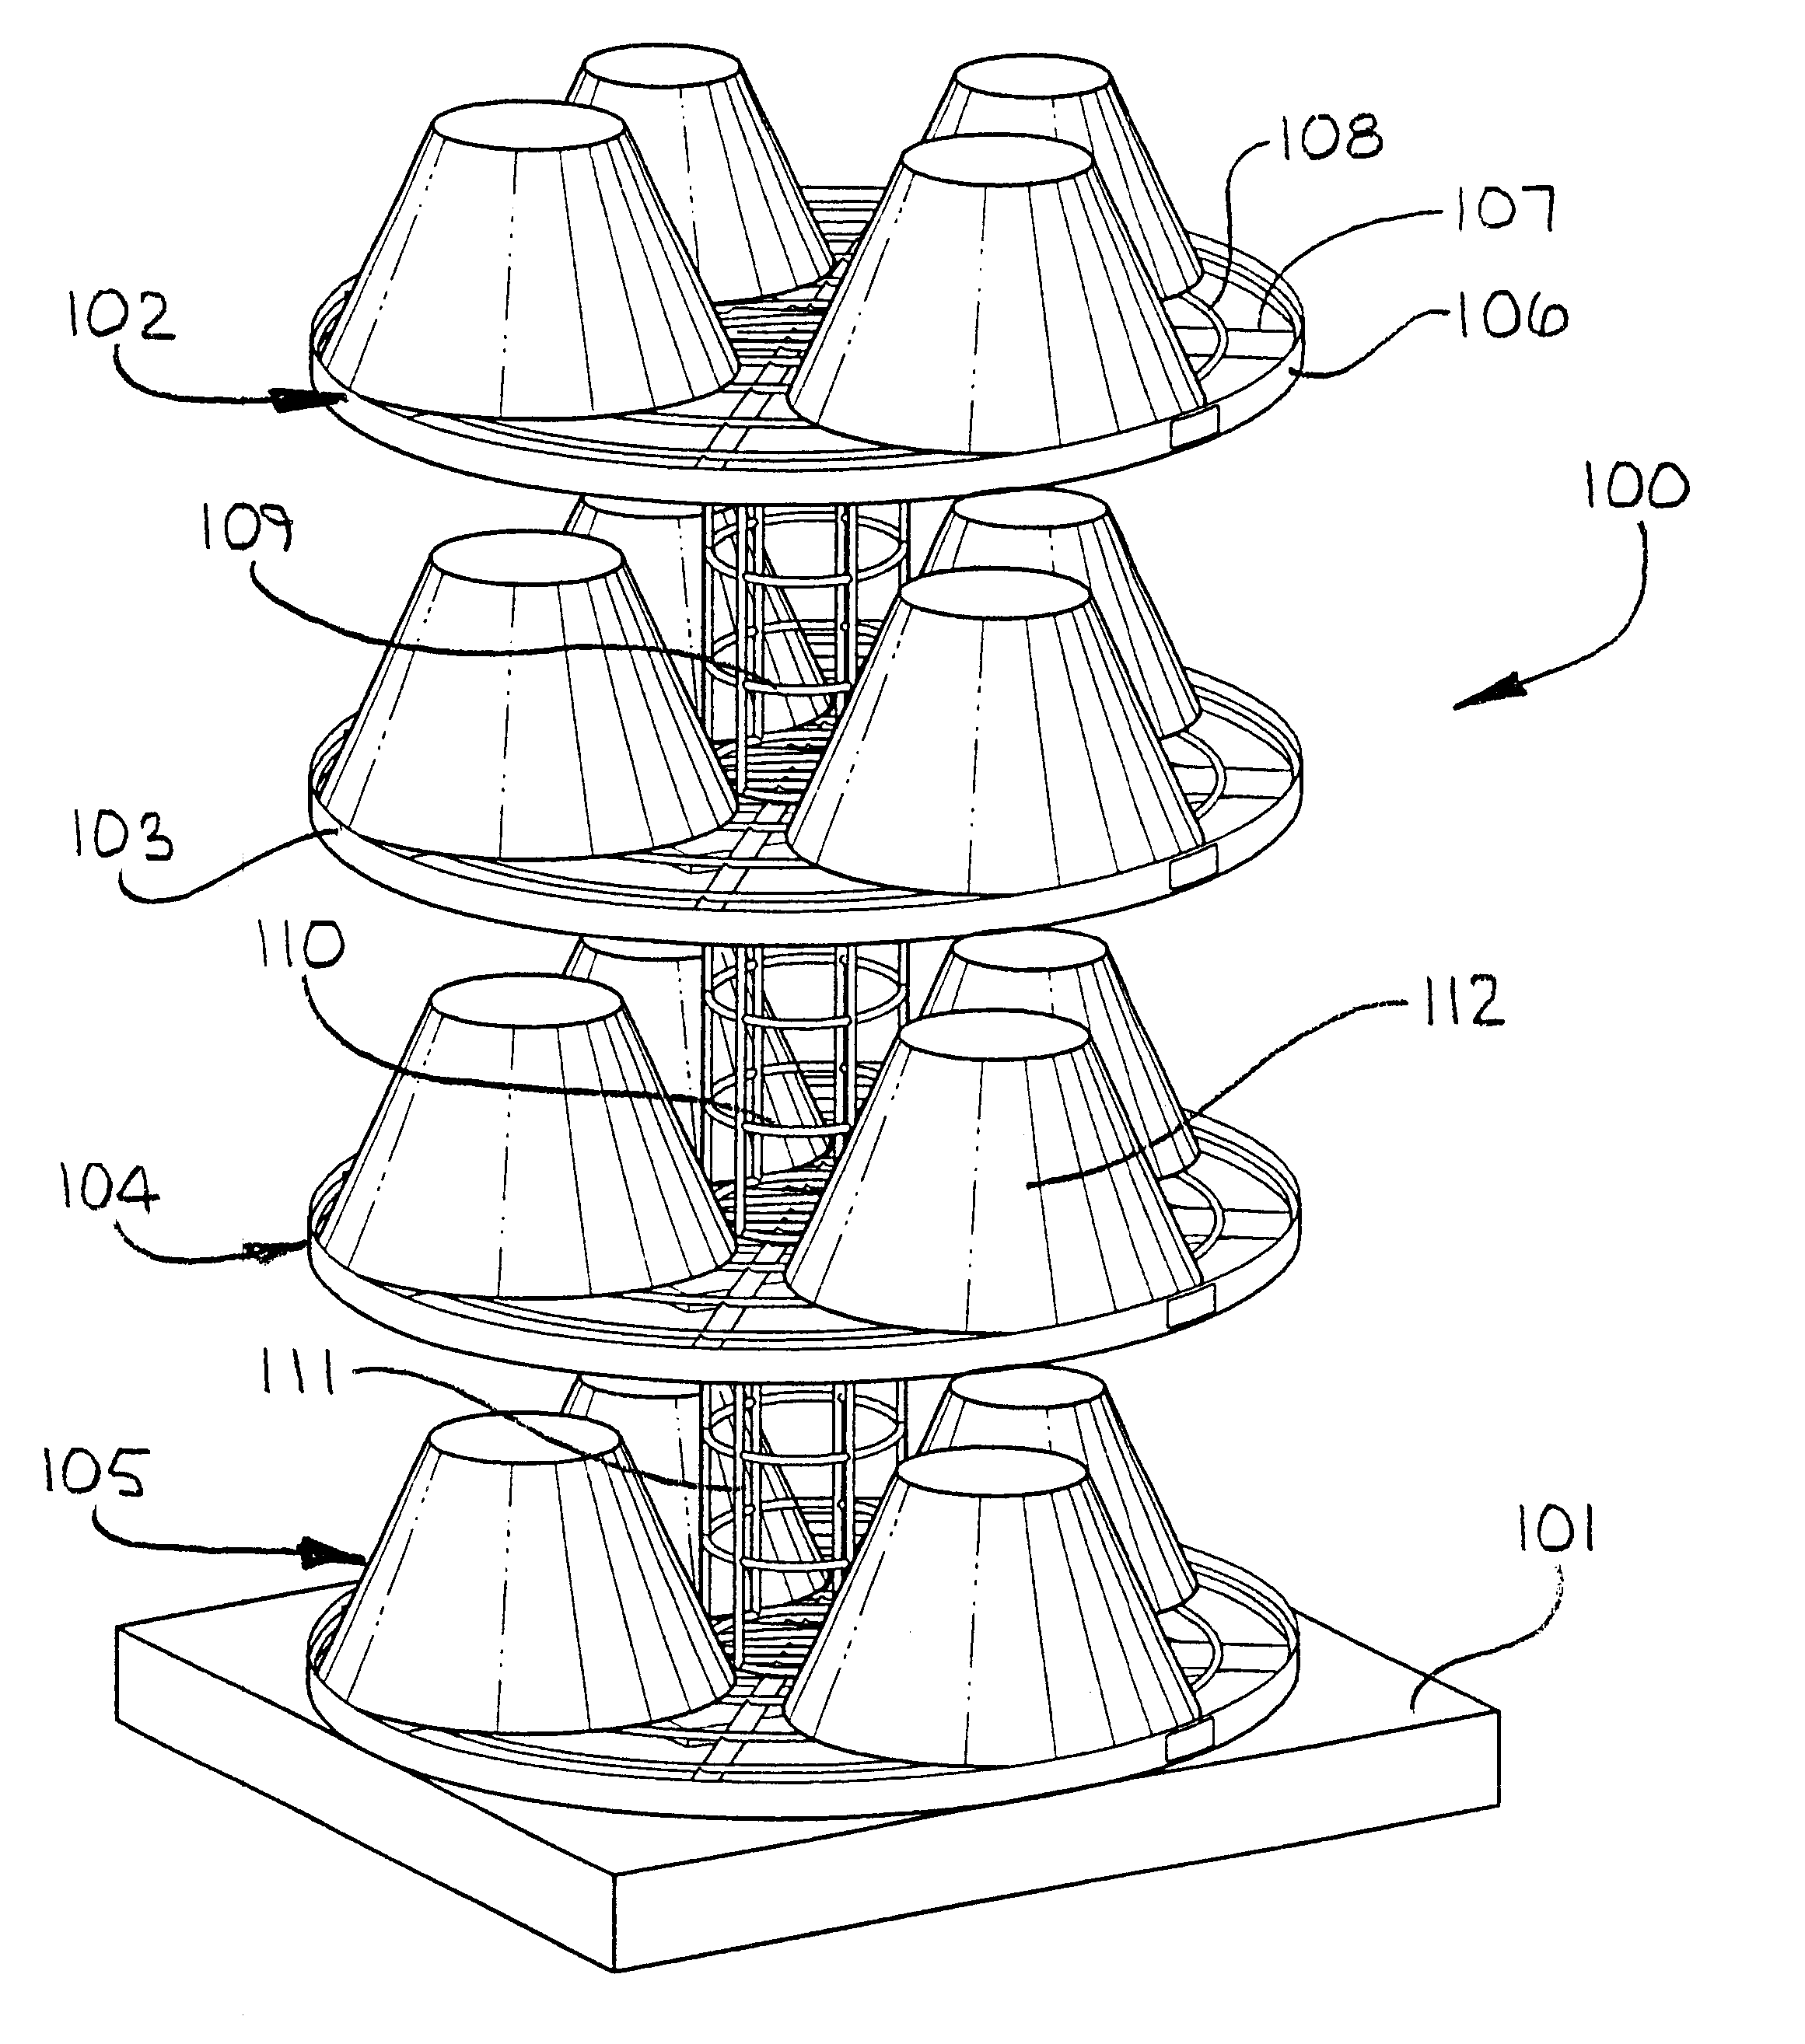 Patent us6591993 rotating lamp shade display carousel system patent us6591993 rotating lamp shade display carousel system google patents aloadofball Image collections